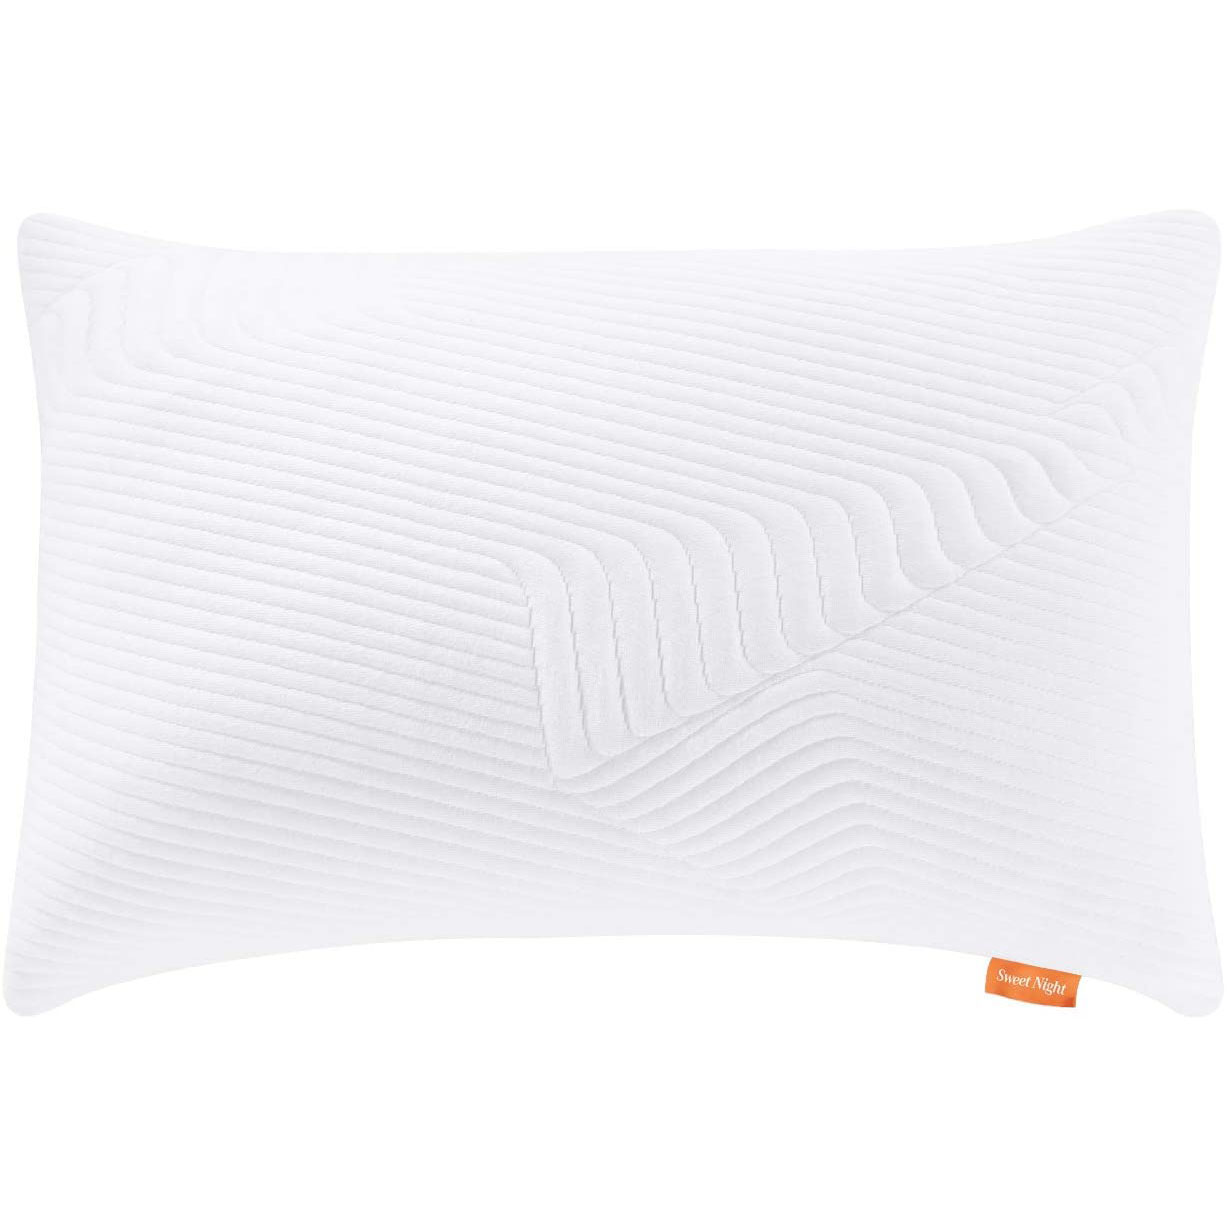 Sweetnight Bamboo Bed Pillows for Sleeping